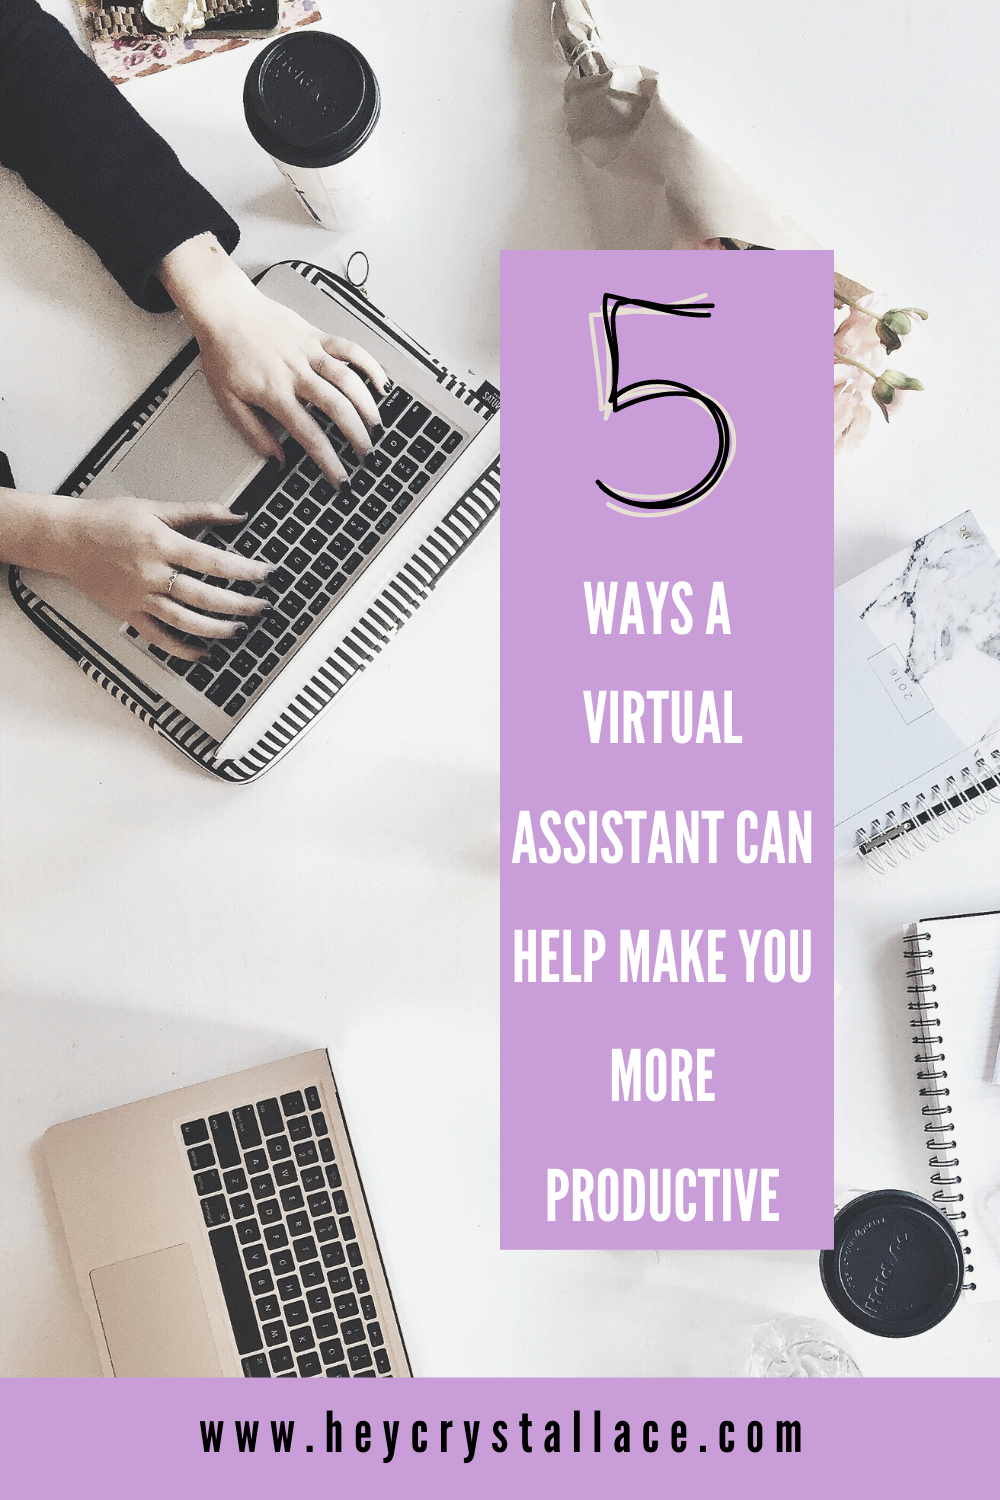 5 Ways a Virtual Assistant Can Make You More Productive